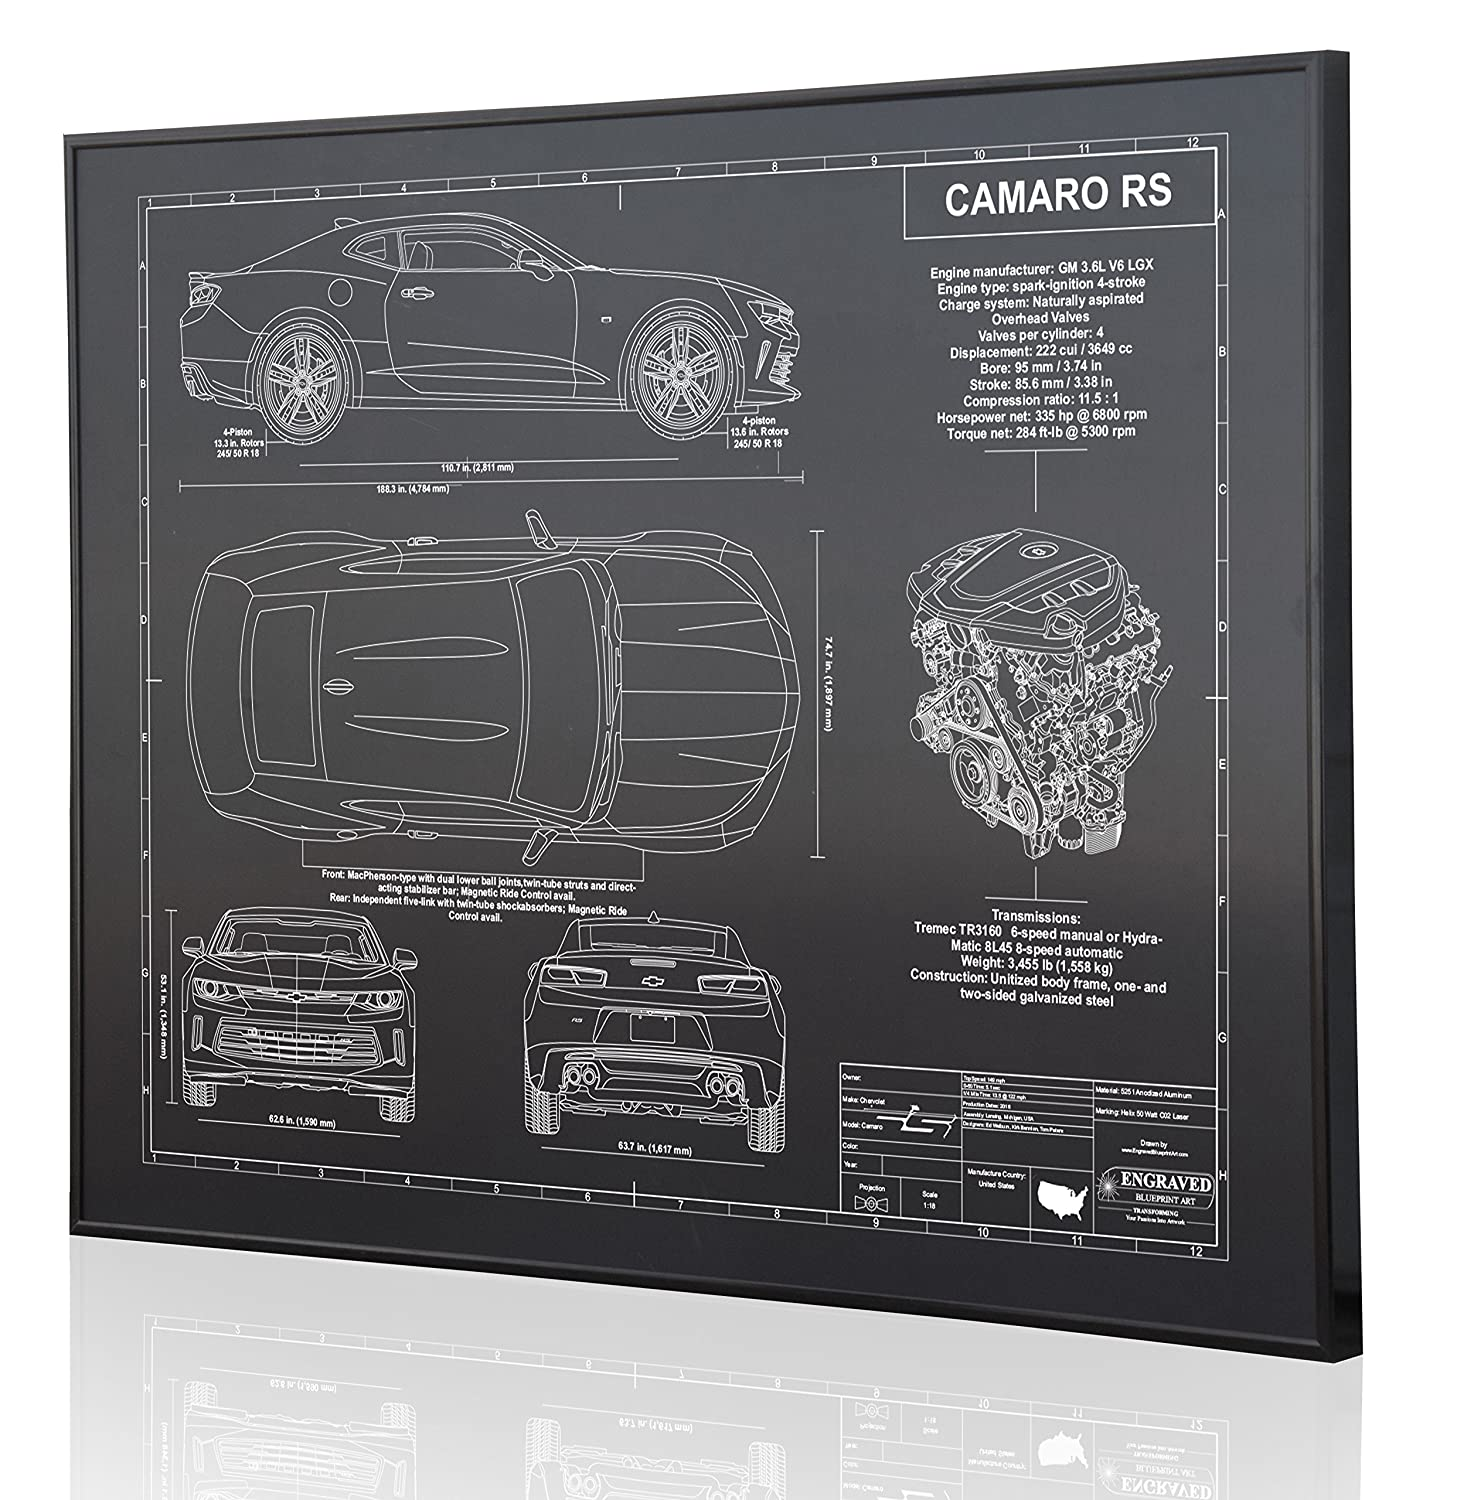 Amazon.com: Chevrolet Camaro RS 6th Generation Blueprint Artwork-Laser  Marked & Personalized-The Perfect Camaro Gifts: Handmade